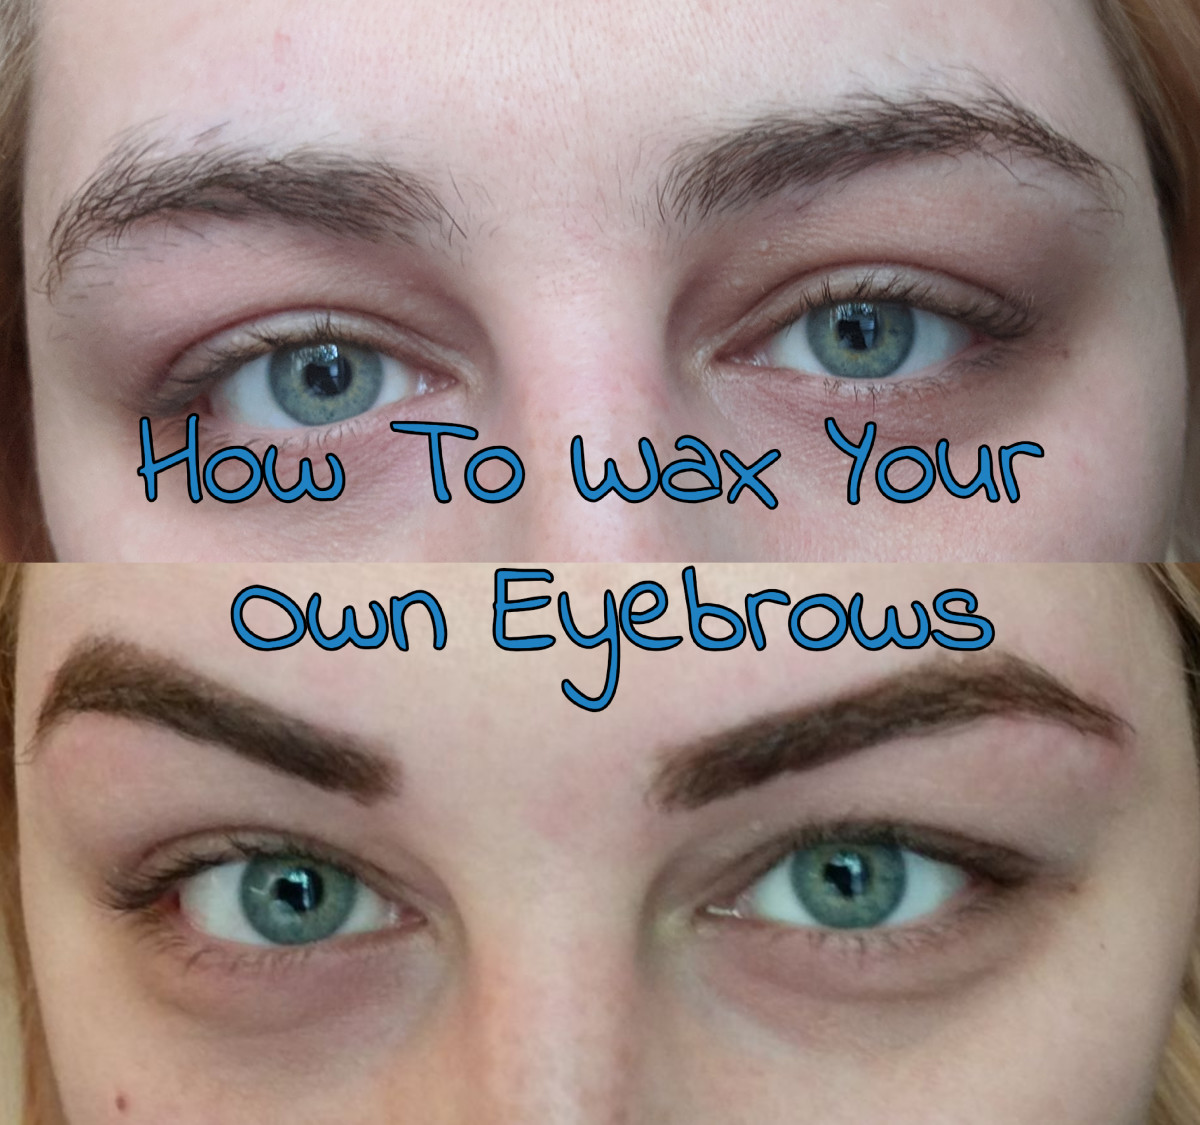 How To Wax Your Own Eyebrows Using Sally Hansen All Over Body Wax